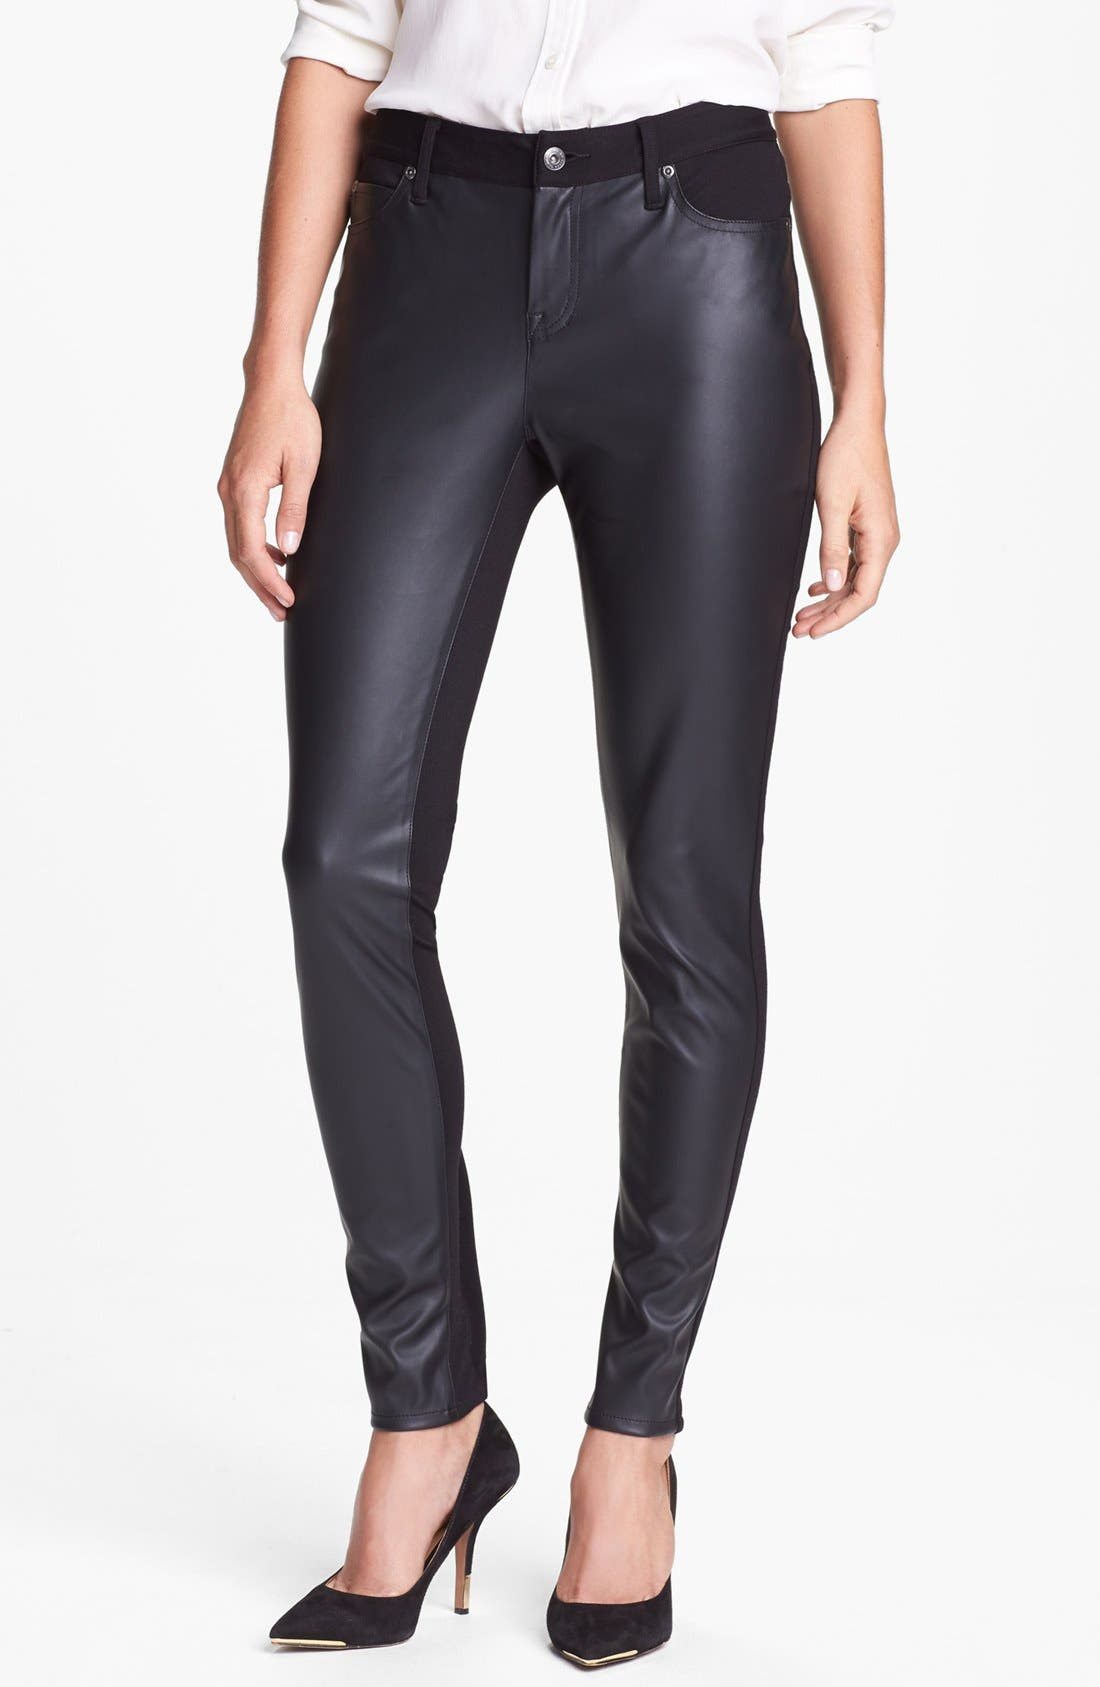 Alternate Image 1 Selected - Two by Vince Camuto Faux Leather & Ponte Skinny Pants